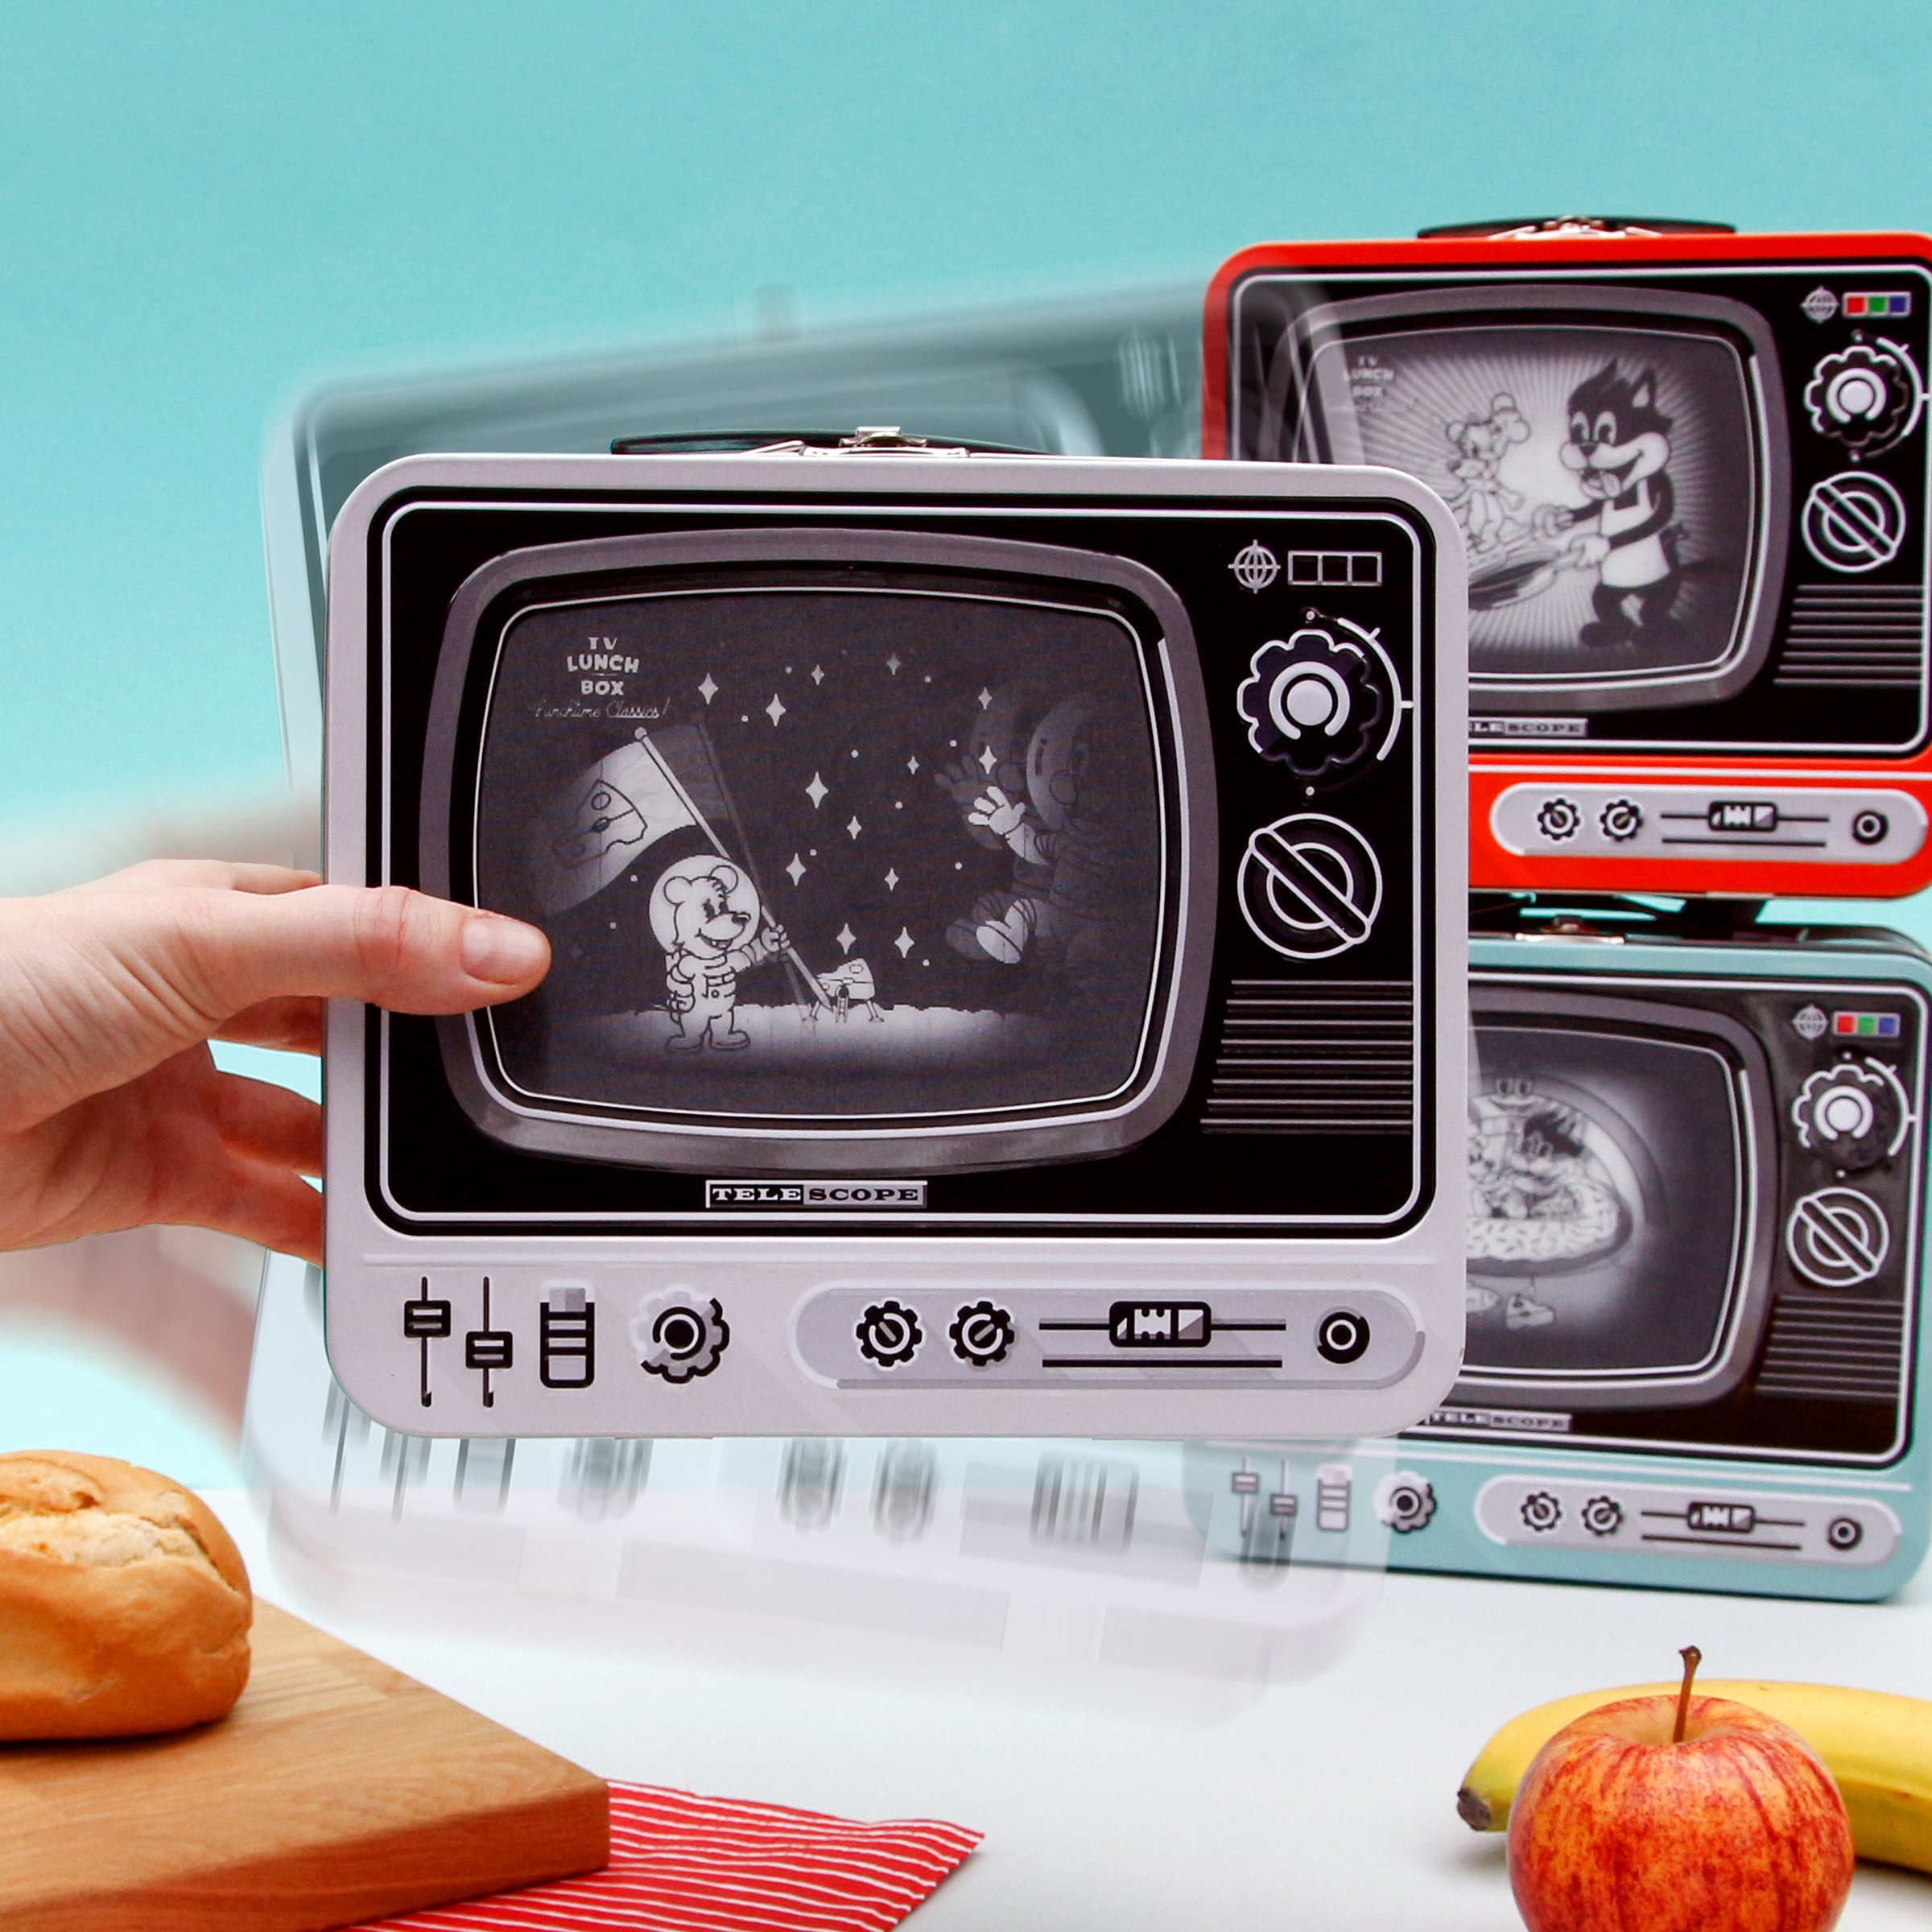 TV Lunch Box with Lenticular screen